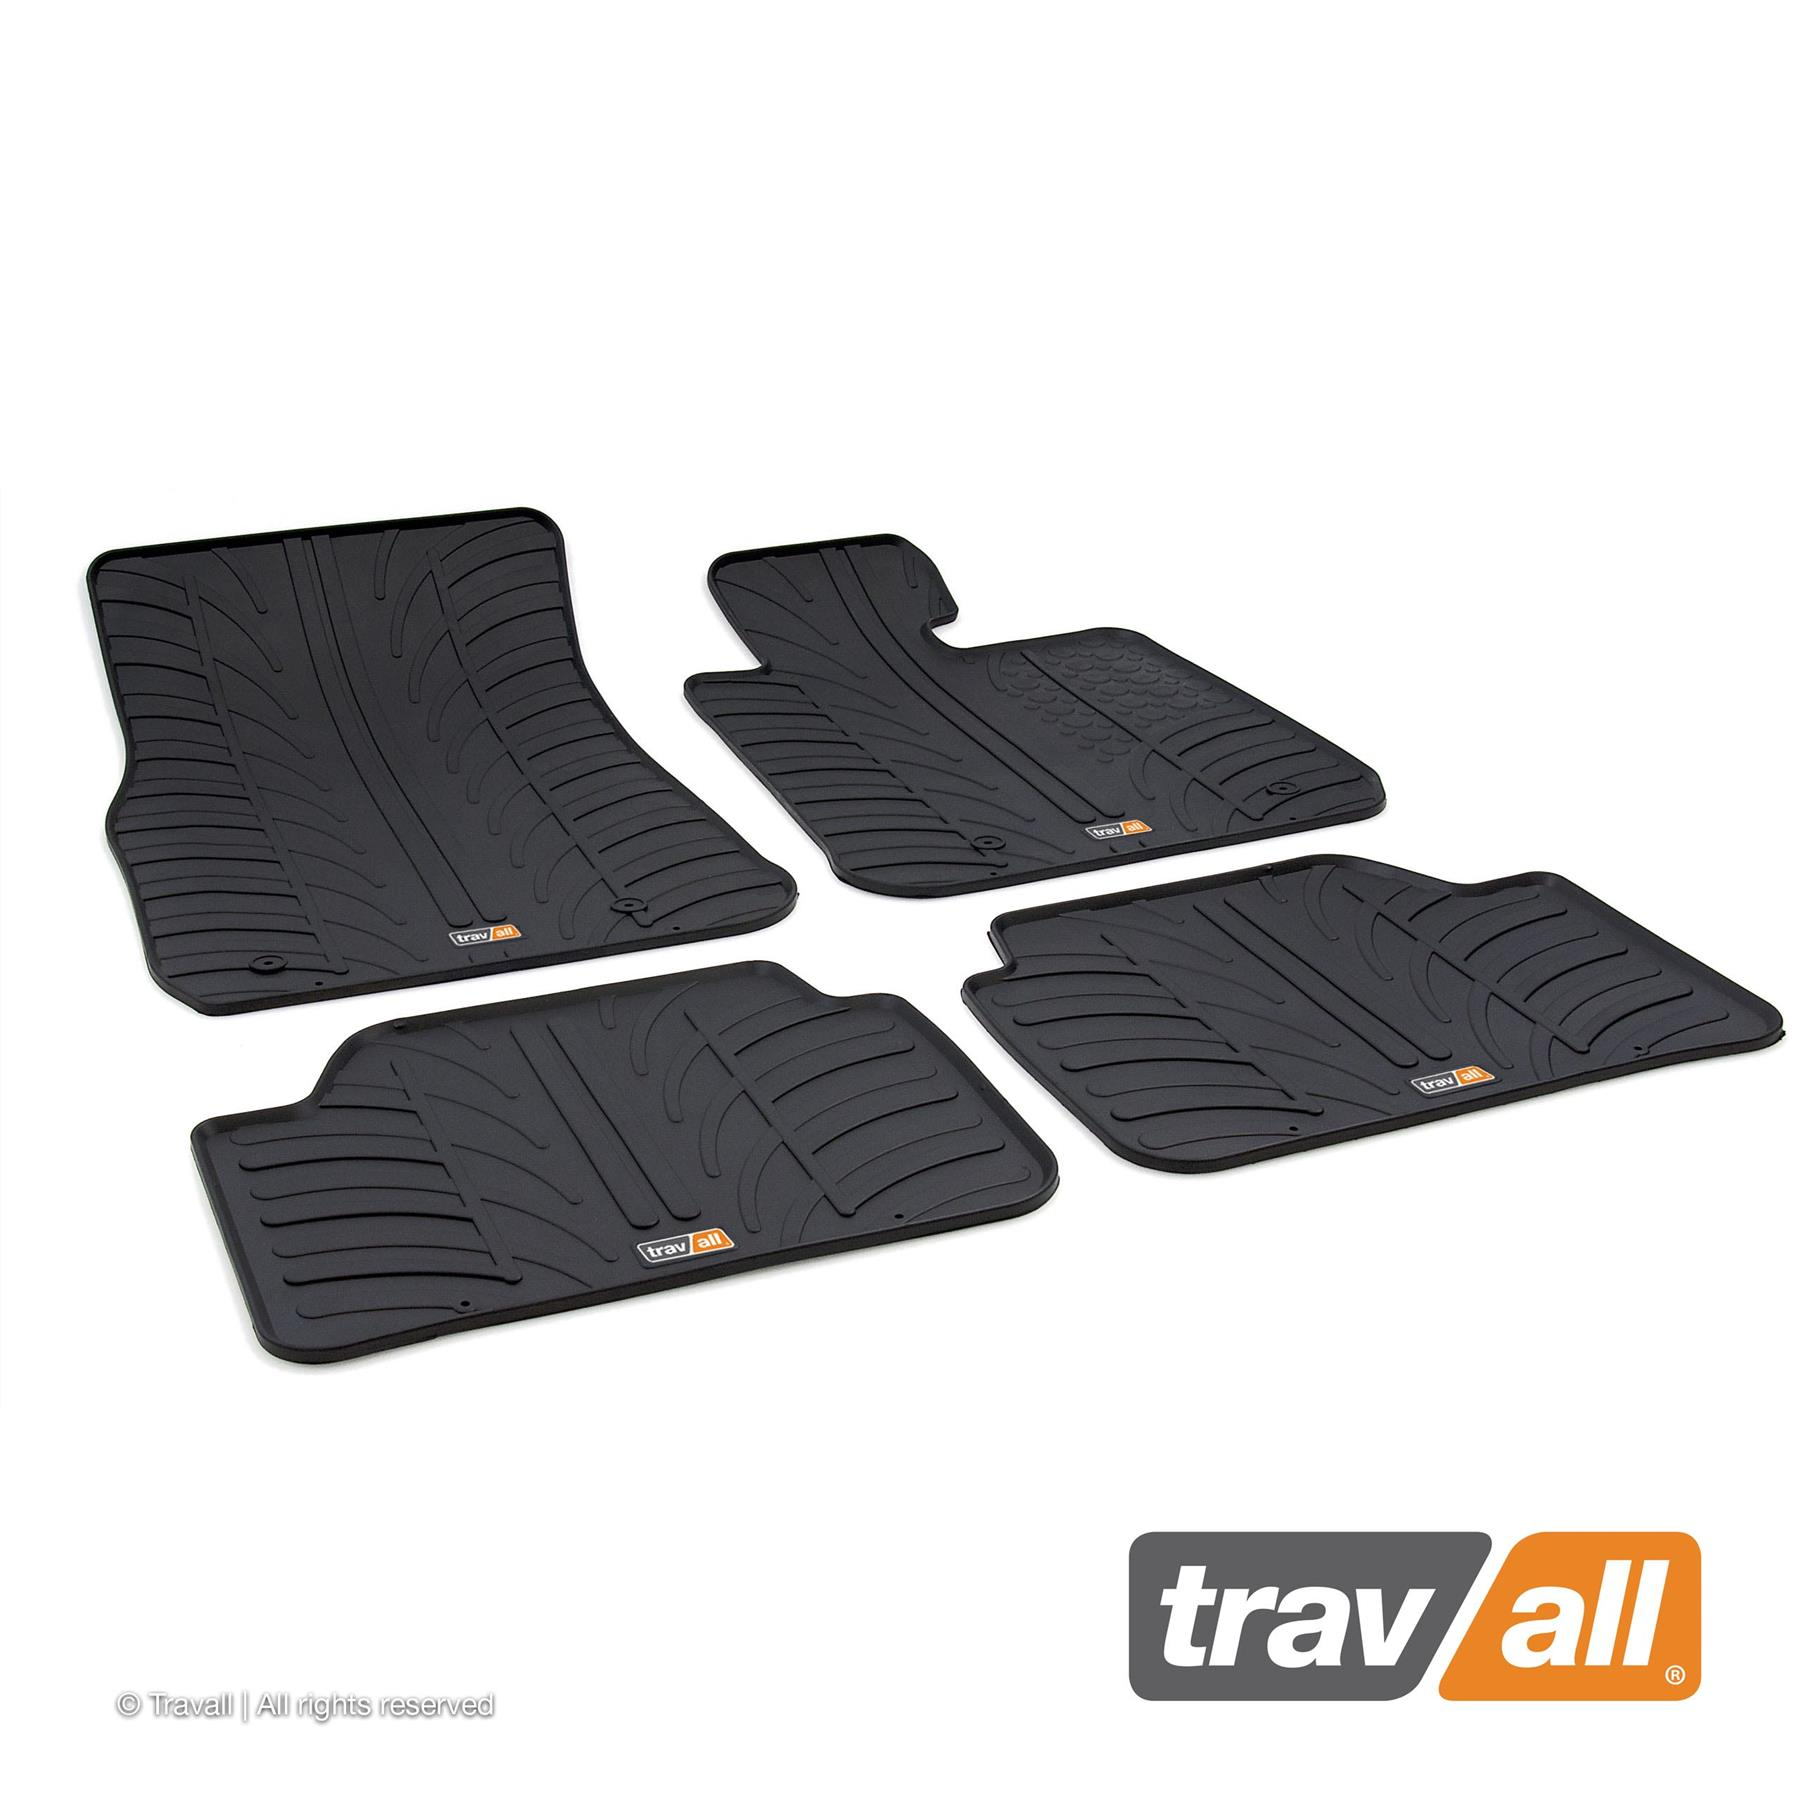 Travall Liner TBM1095 Vehicle-Specific Black Rubber Boot Mat Liner